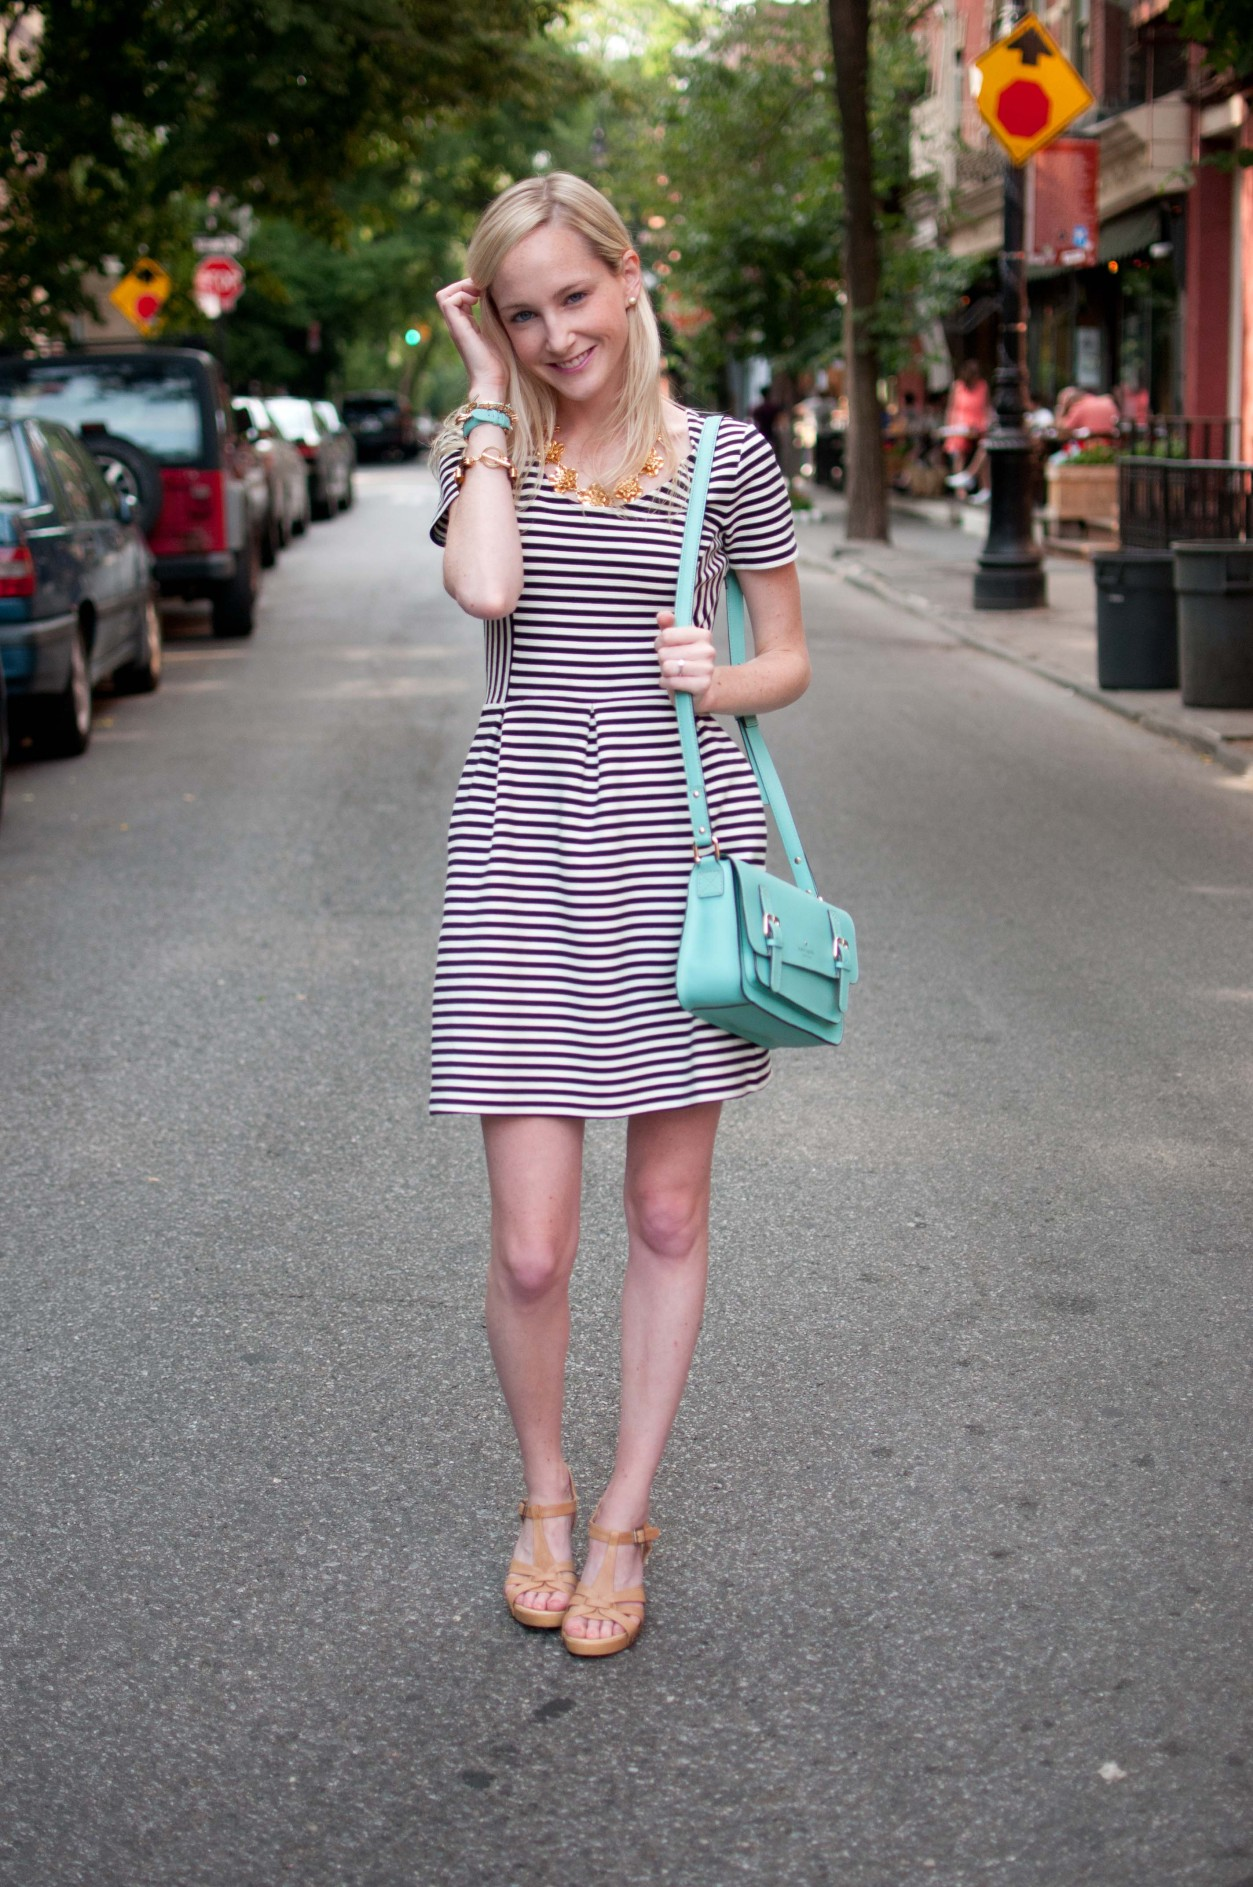 Striped Dresses Turquoise Bags And Gold Accents For A